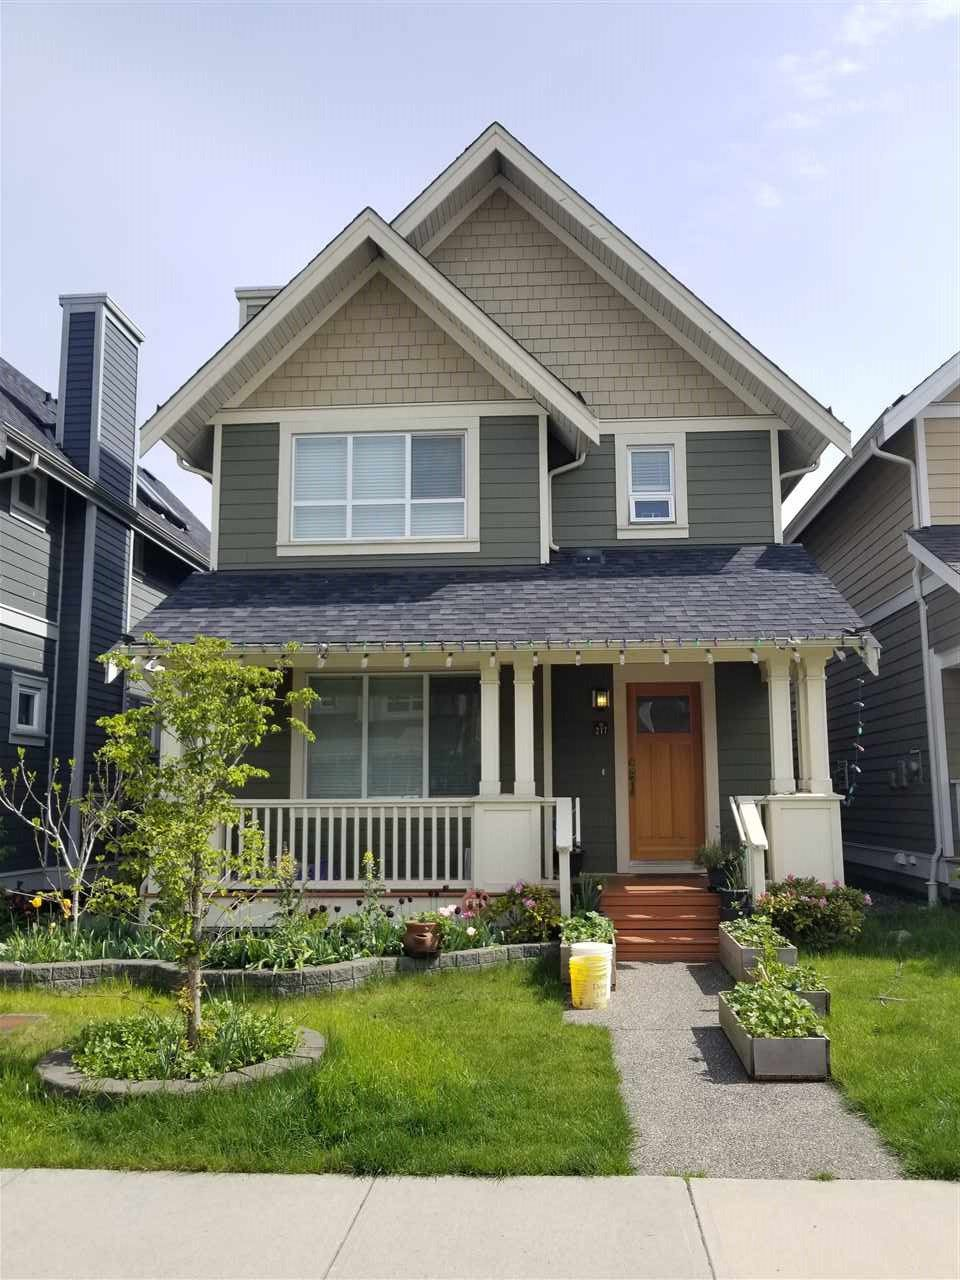 Main Photo: 217 JENSEN Street in New Westminster: Queensborough House for sale : MLS®# R2366613